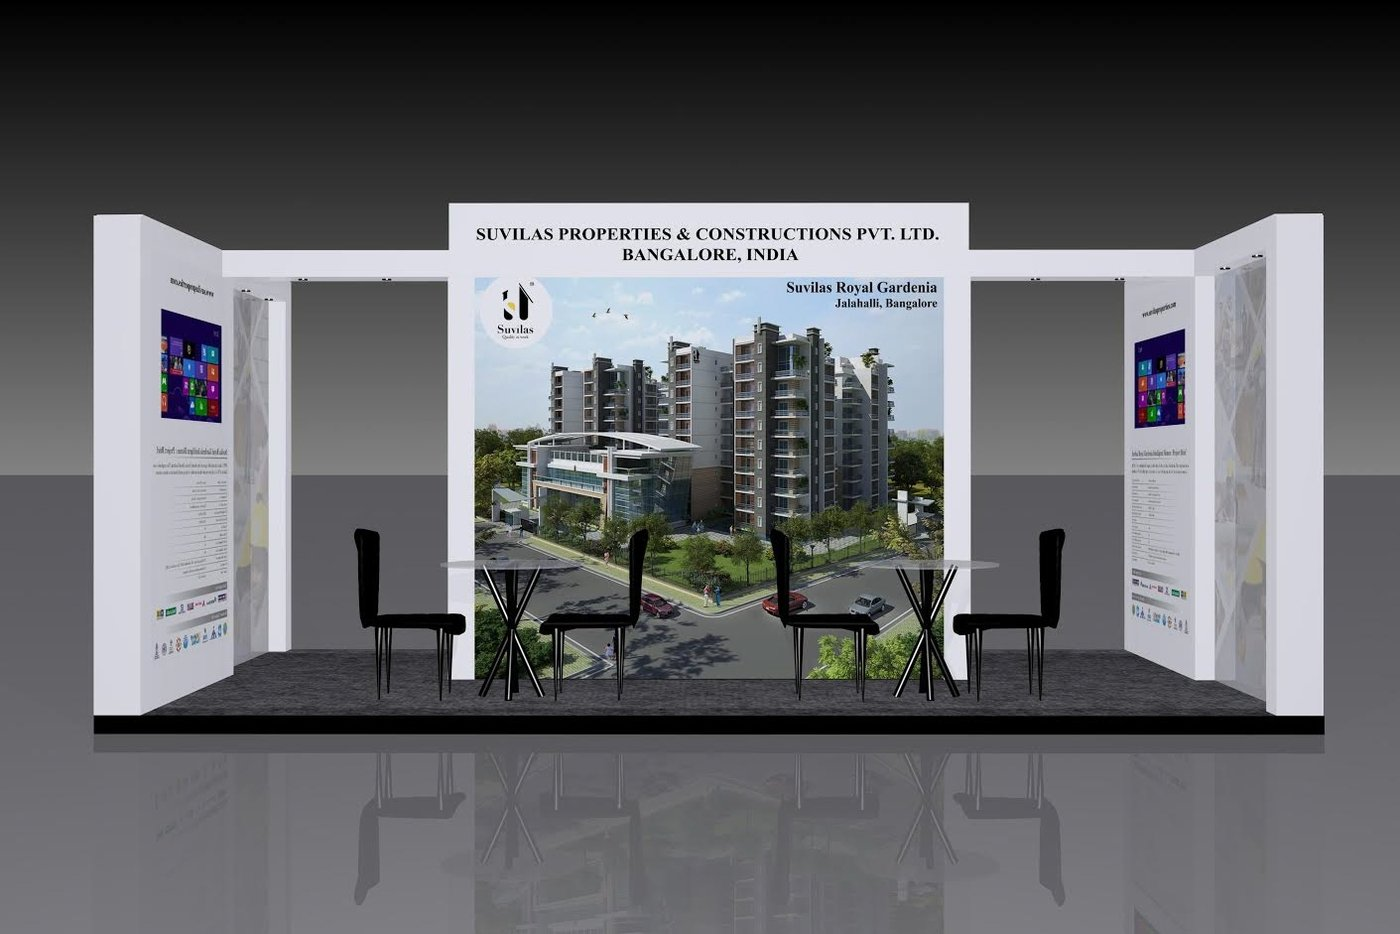 Real Estate Exhibition Stall : Exhibition stall designs by prashanth ap at coroflot